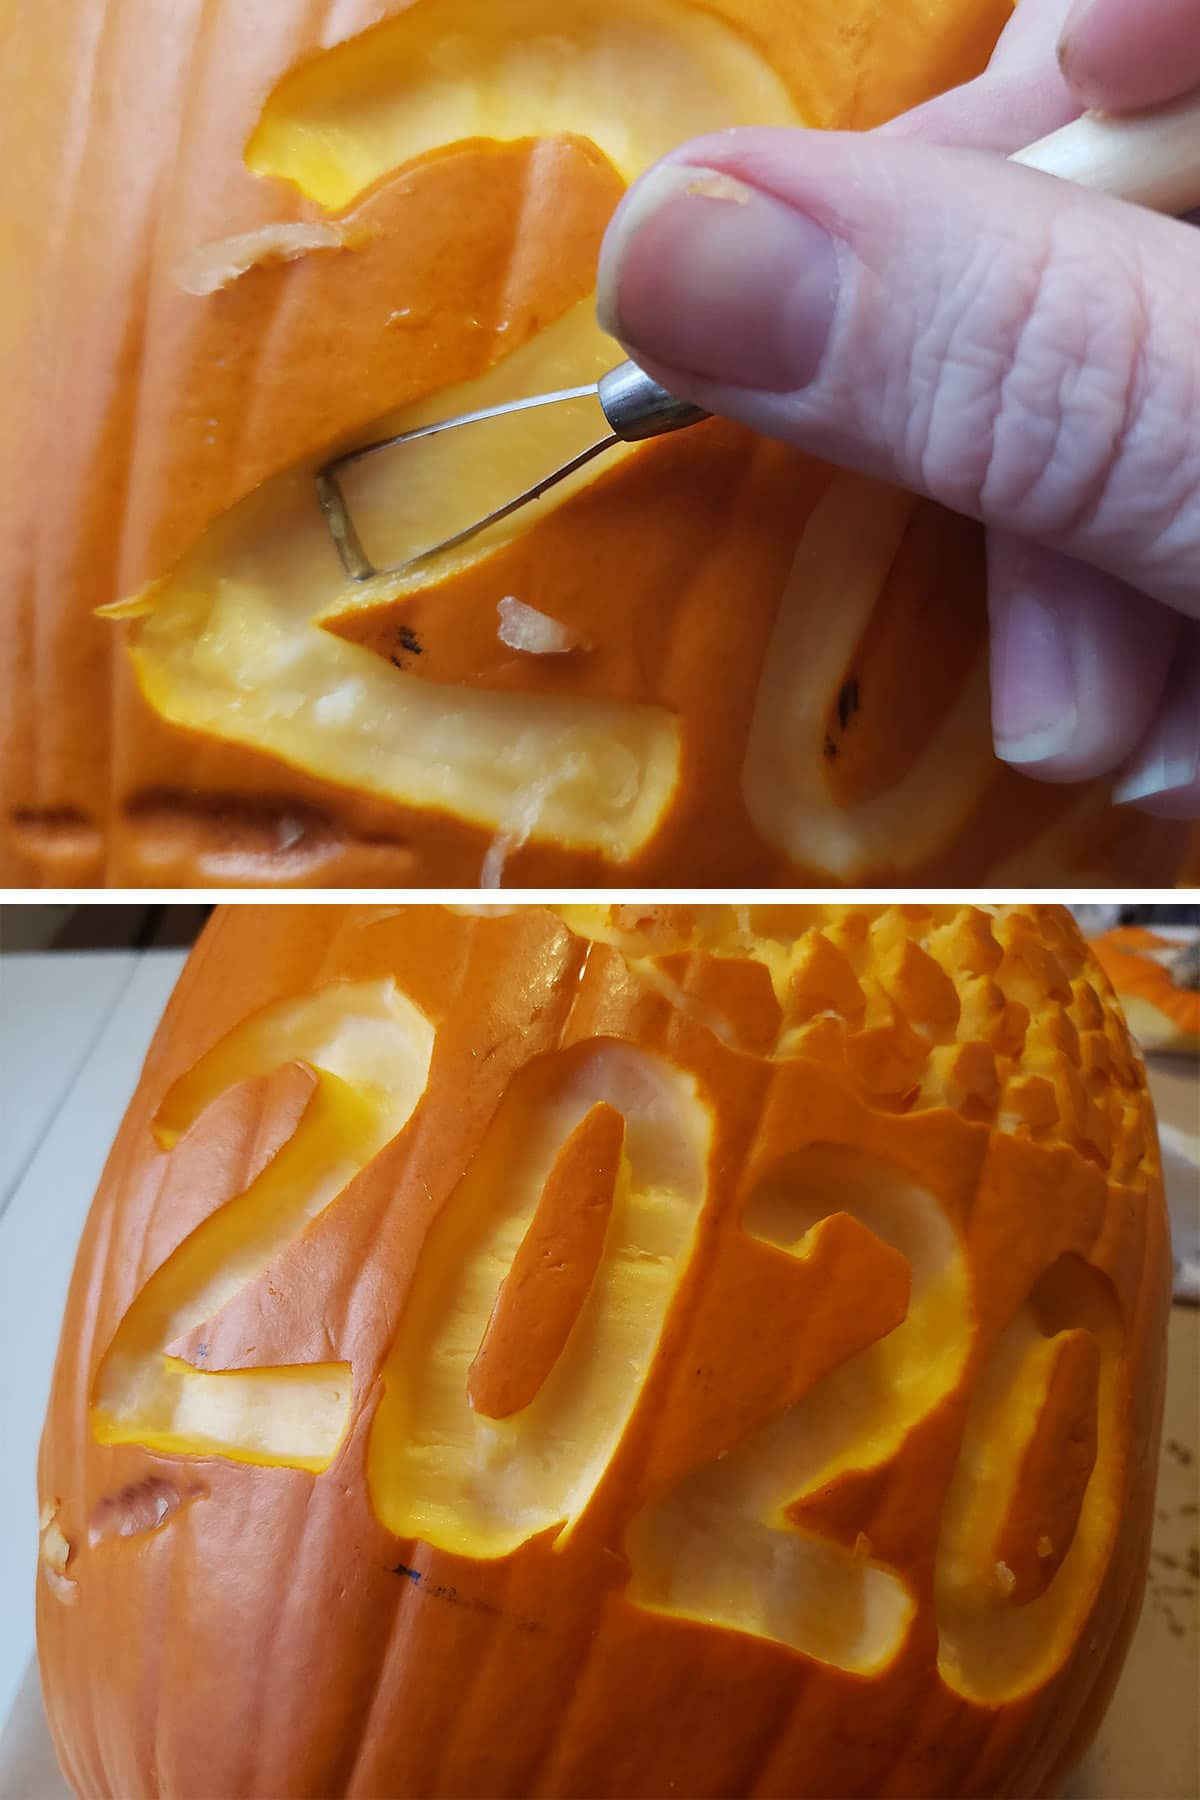 Using a carving tool to strip away sections of orange pumpkin rind.